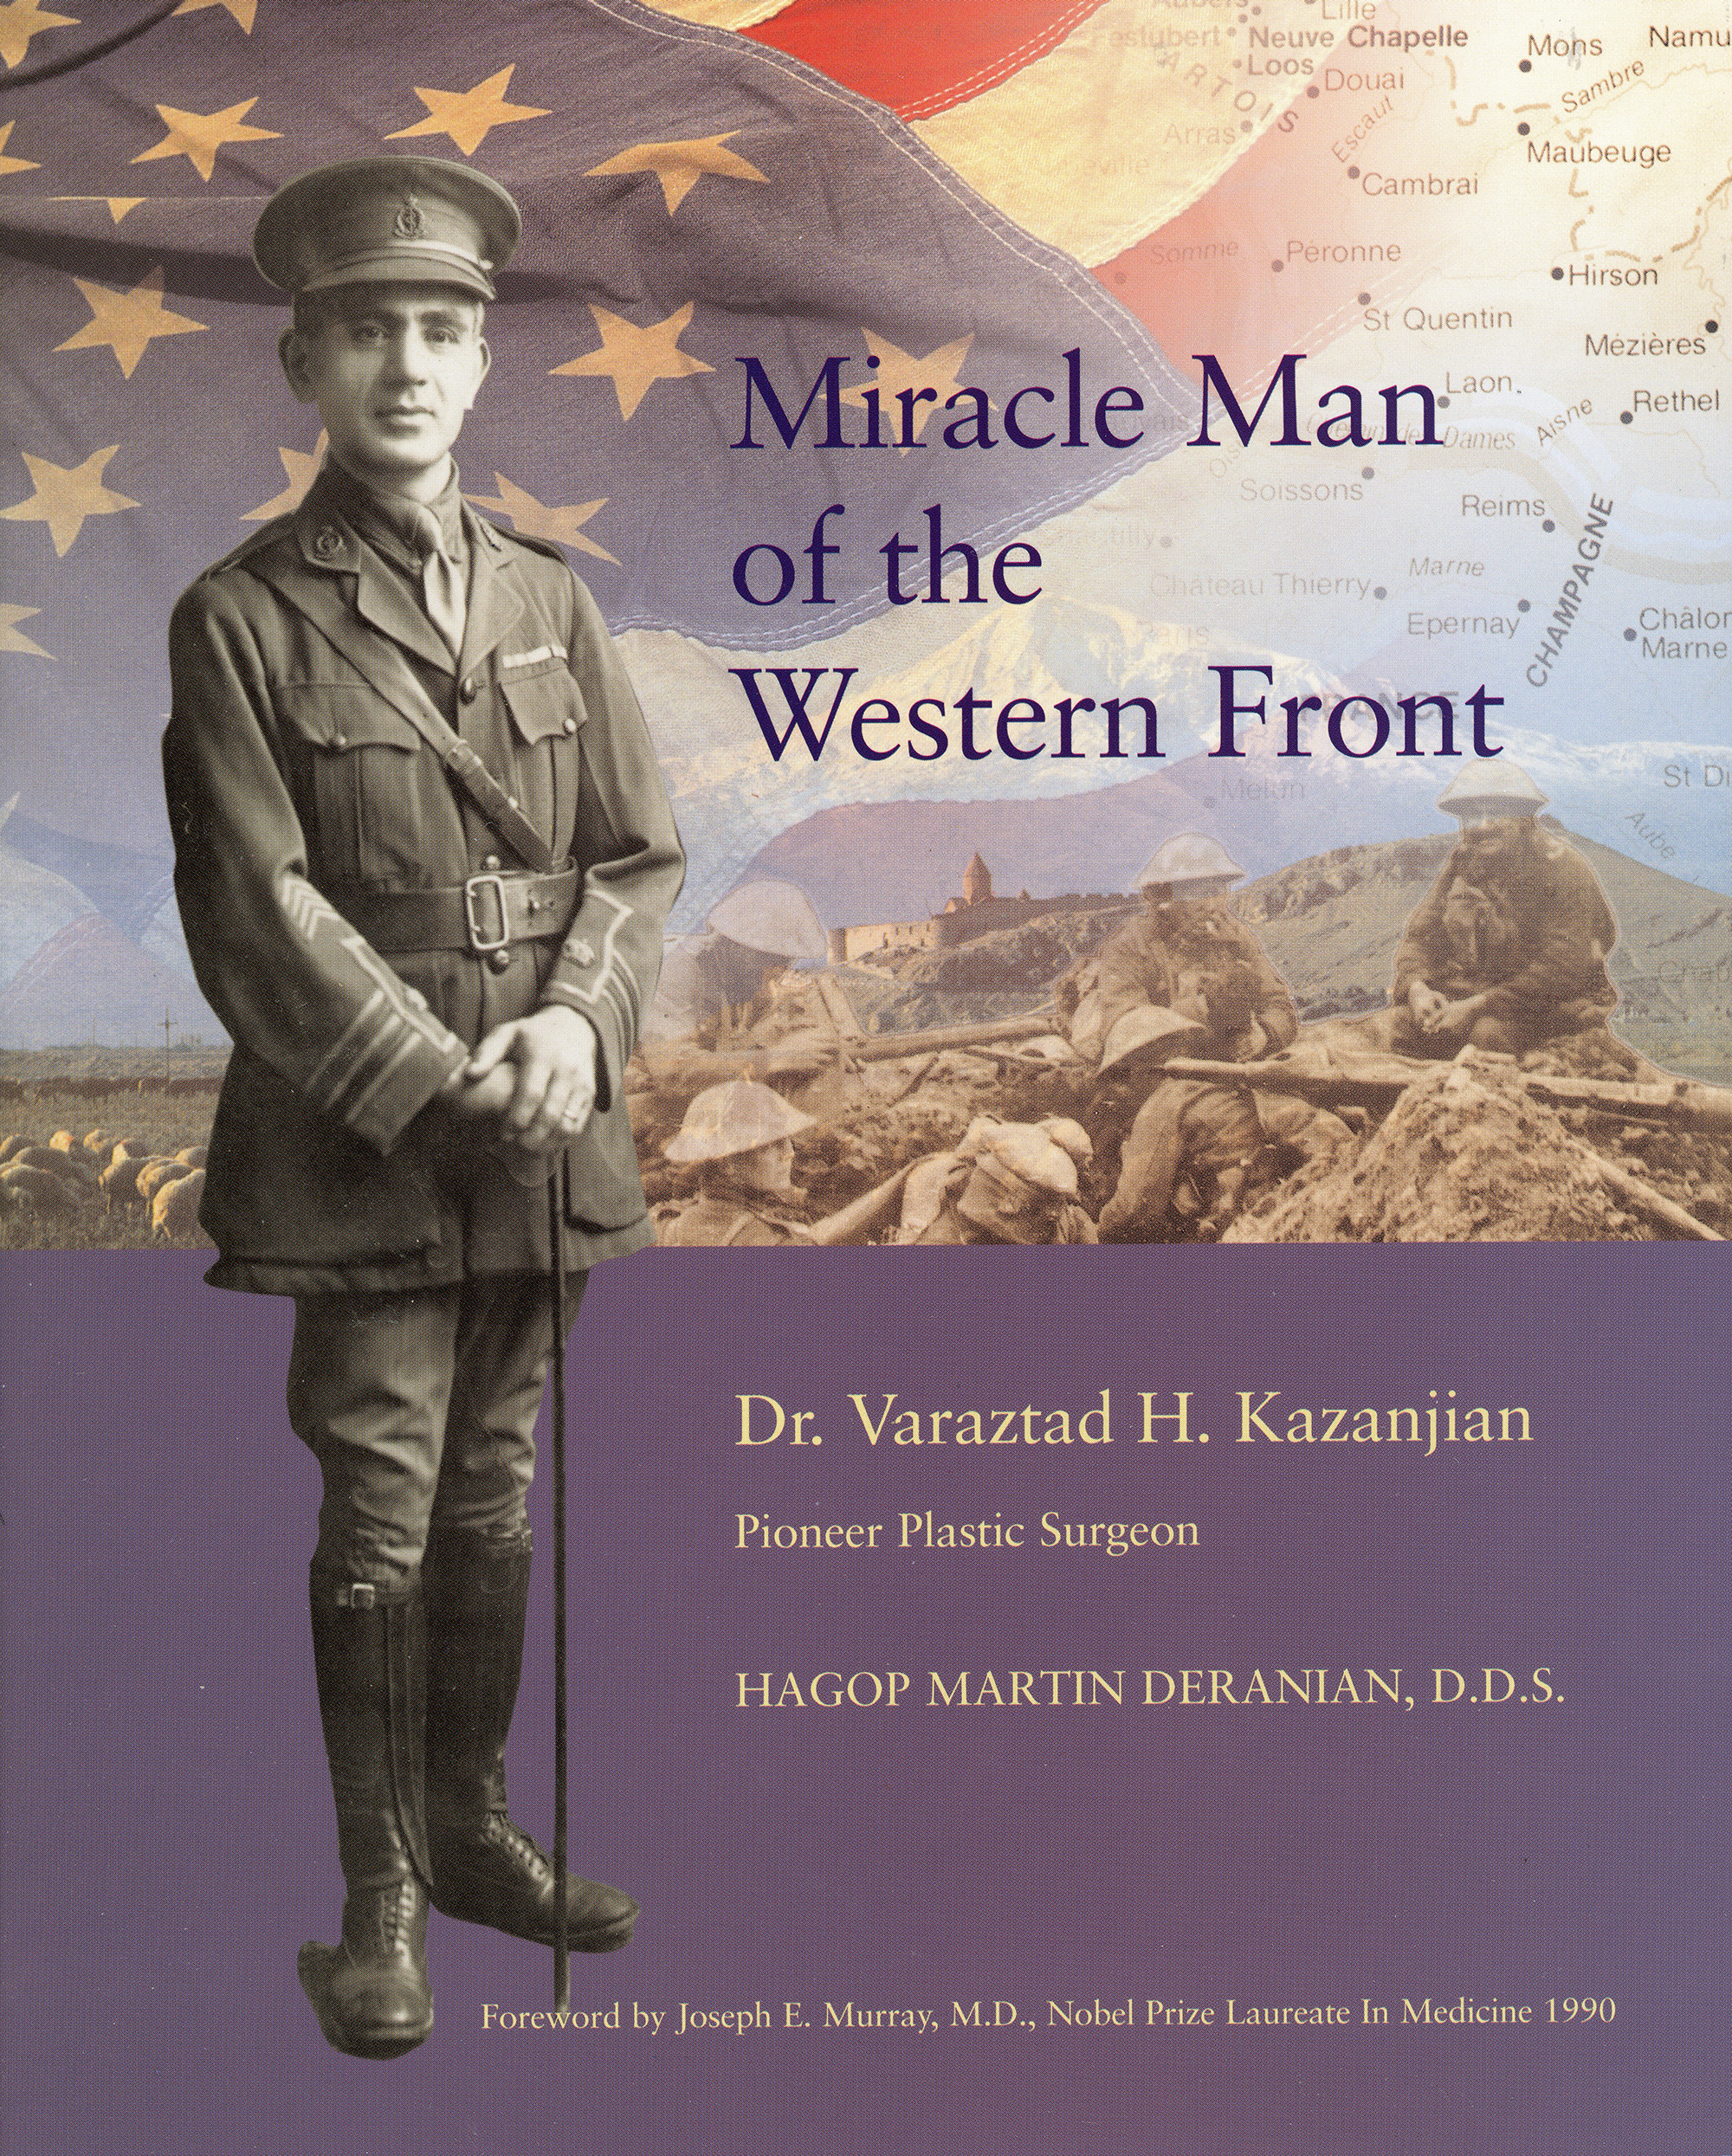 Miracle Man of the Western Front by Martin Deranian, D.D.S.